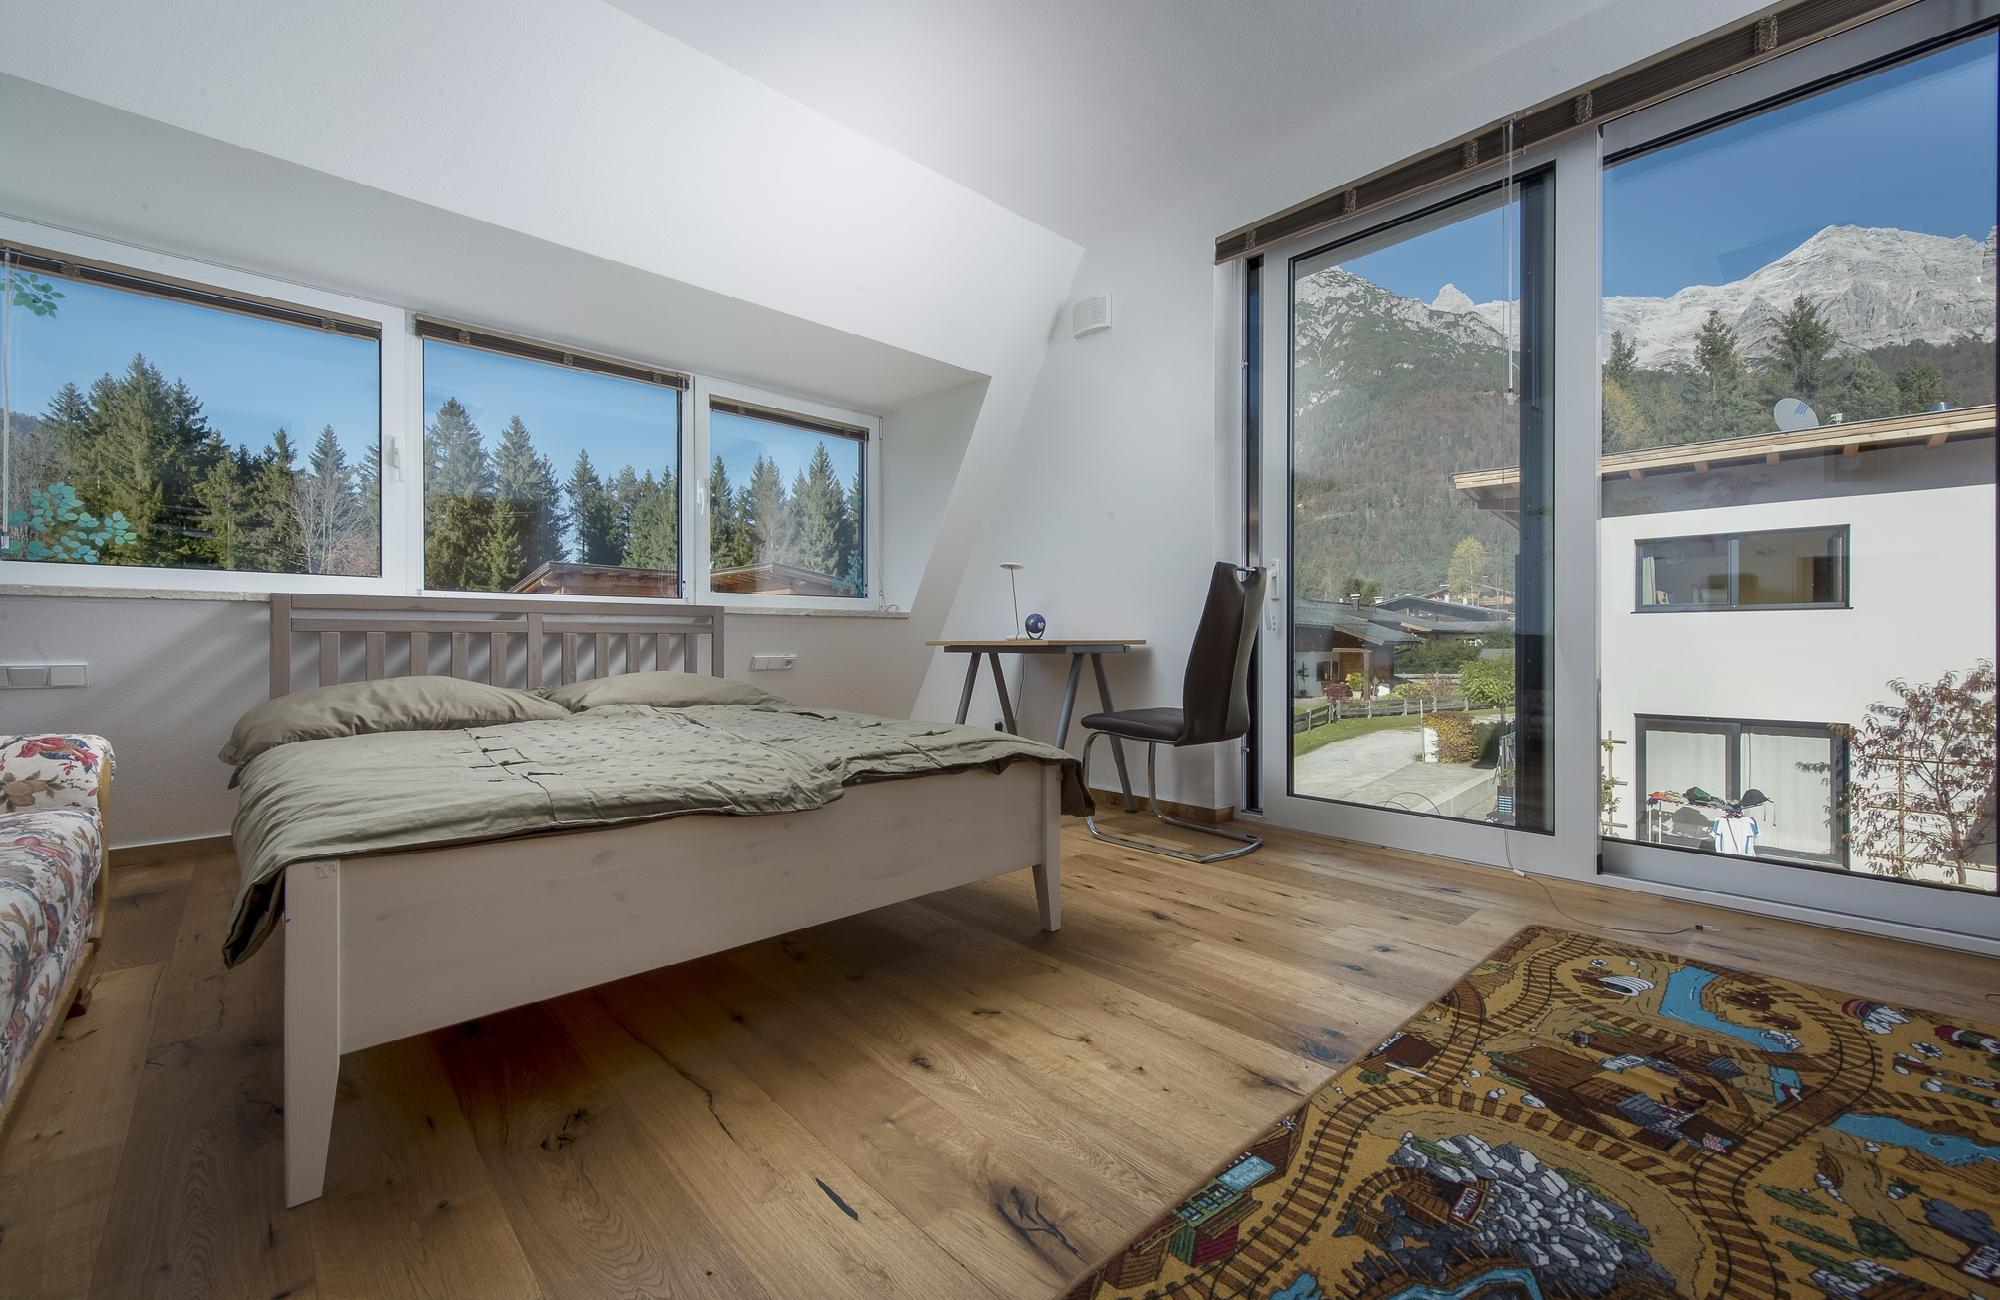 Modern hideaway in the idyllic Pillersee Valley for Sale